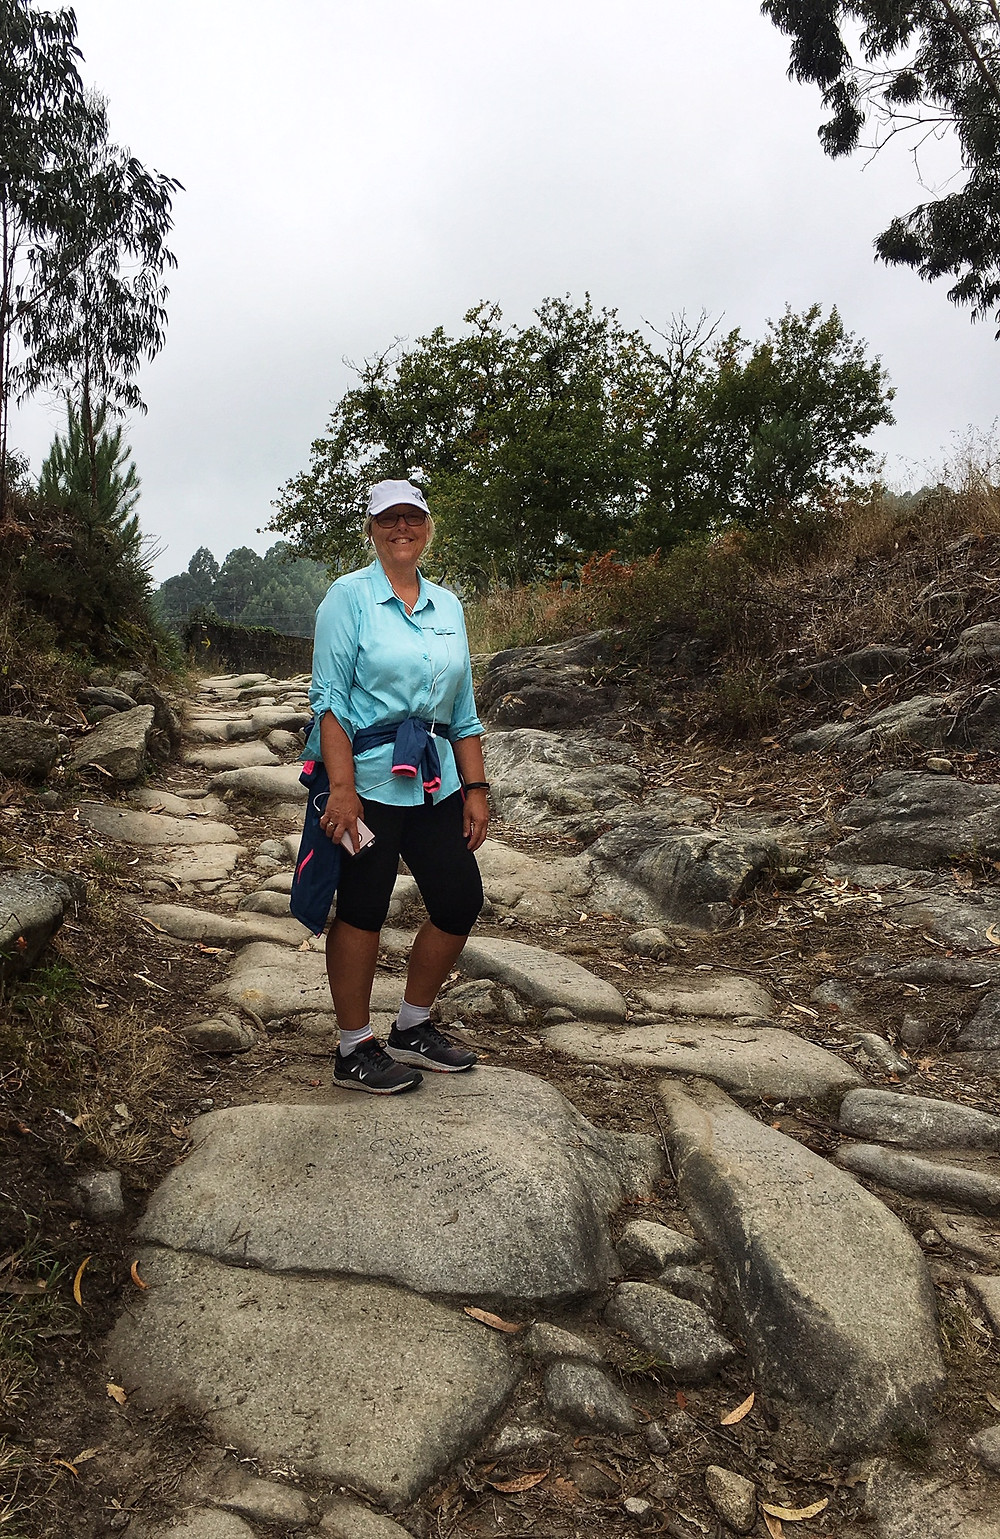 Linda hikes up some rocks on the El Camino trail in Redonela Spain.  She brought a Sea Level Australia swimsuit from Sun Vixen Swimwear with her to wear on her trip.